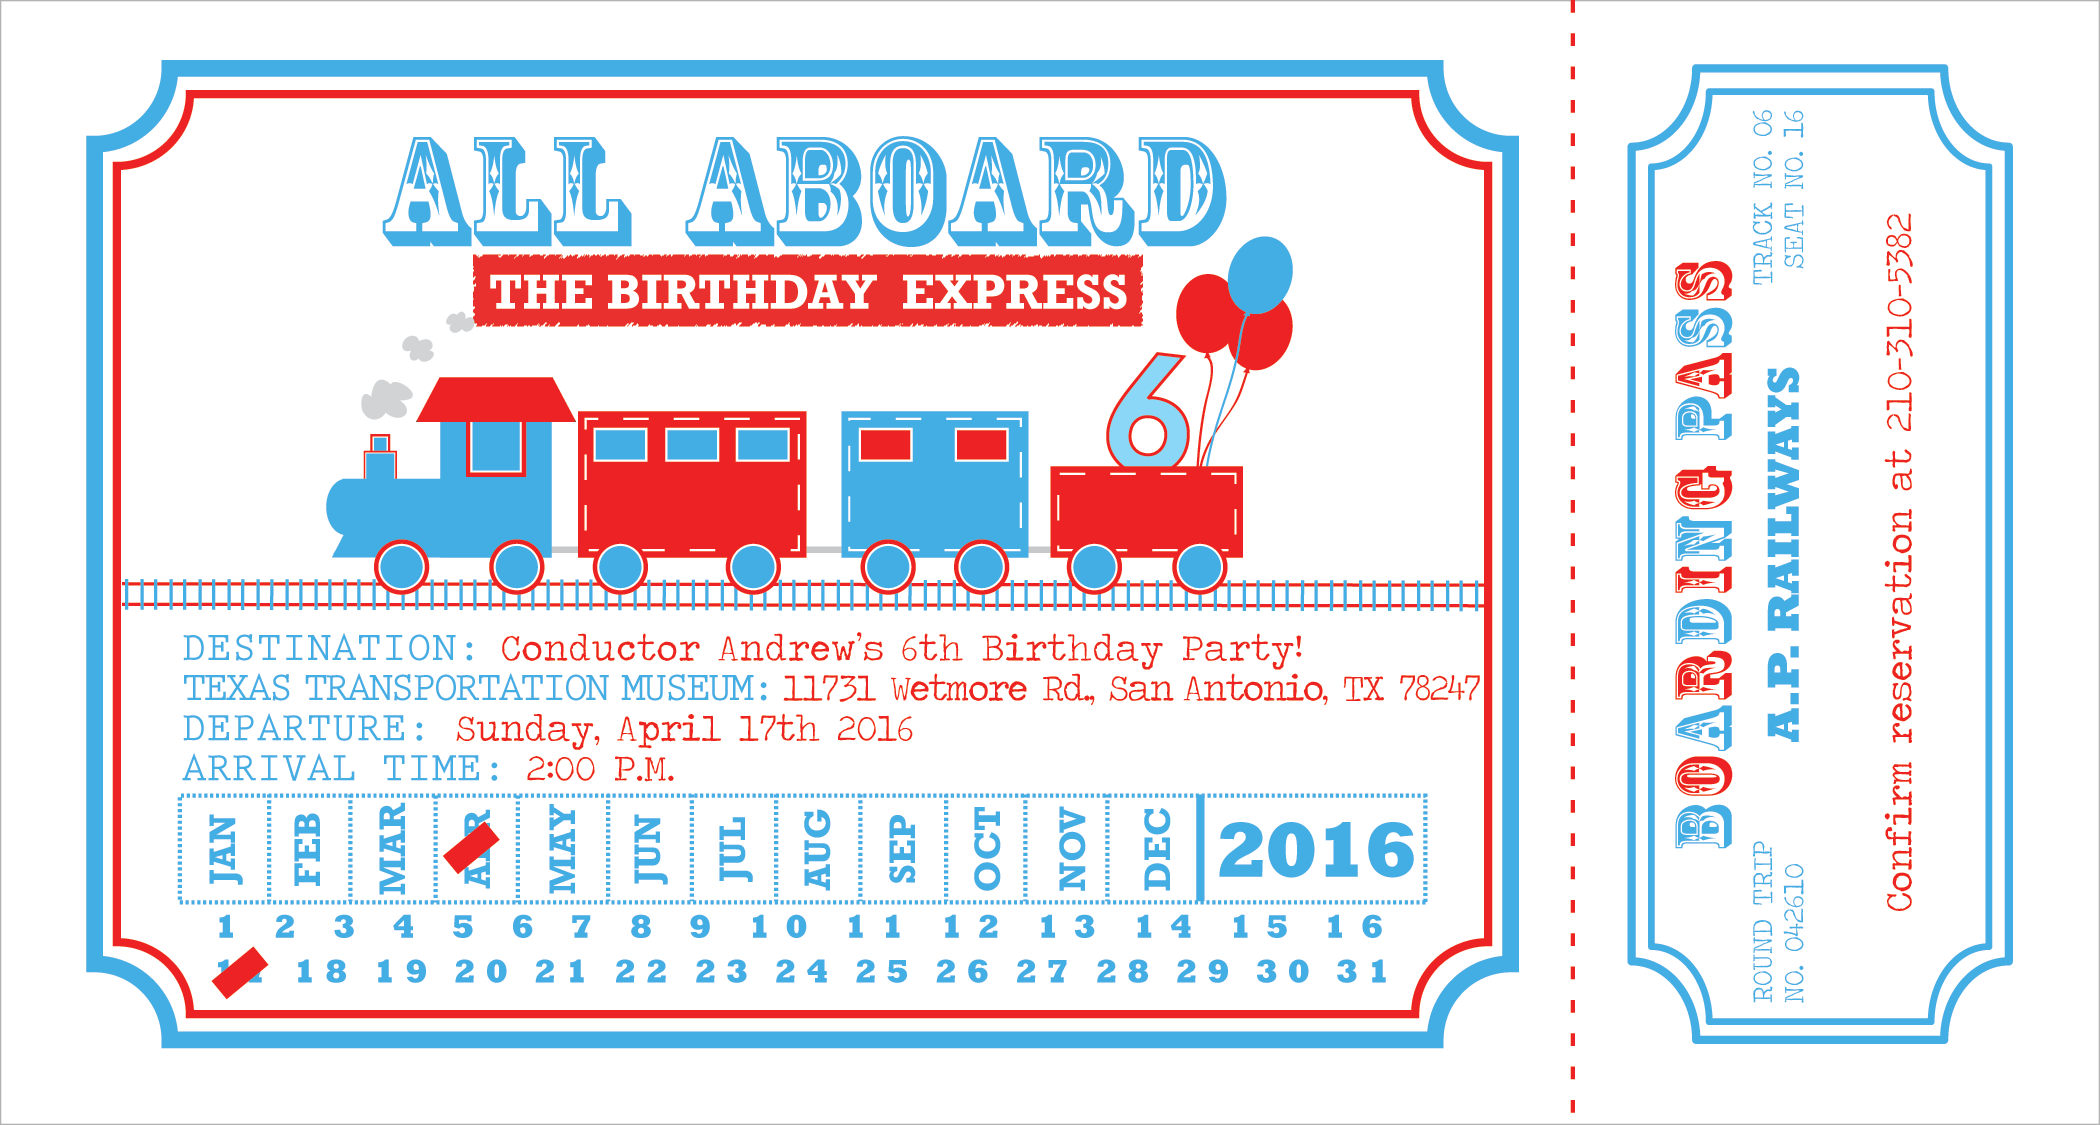 **Note, the red rectangles over month & date will not appear on finished product. These spots will be hand punched as though by a real train conductor!;)